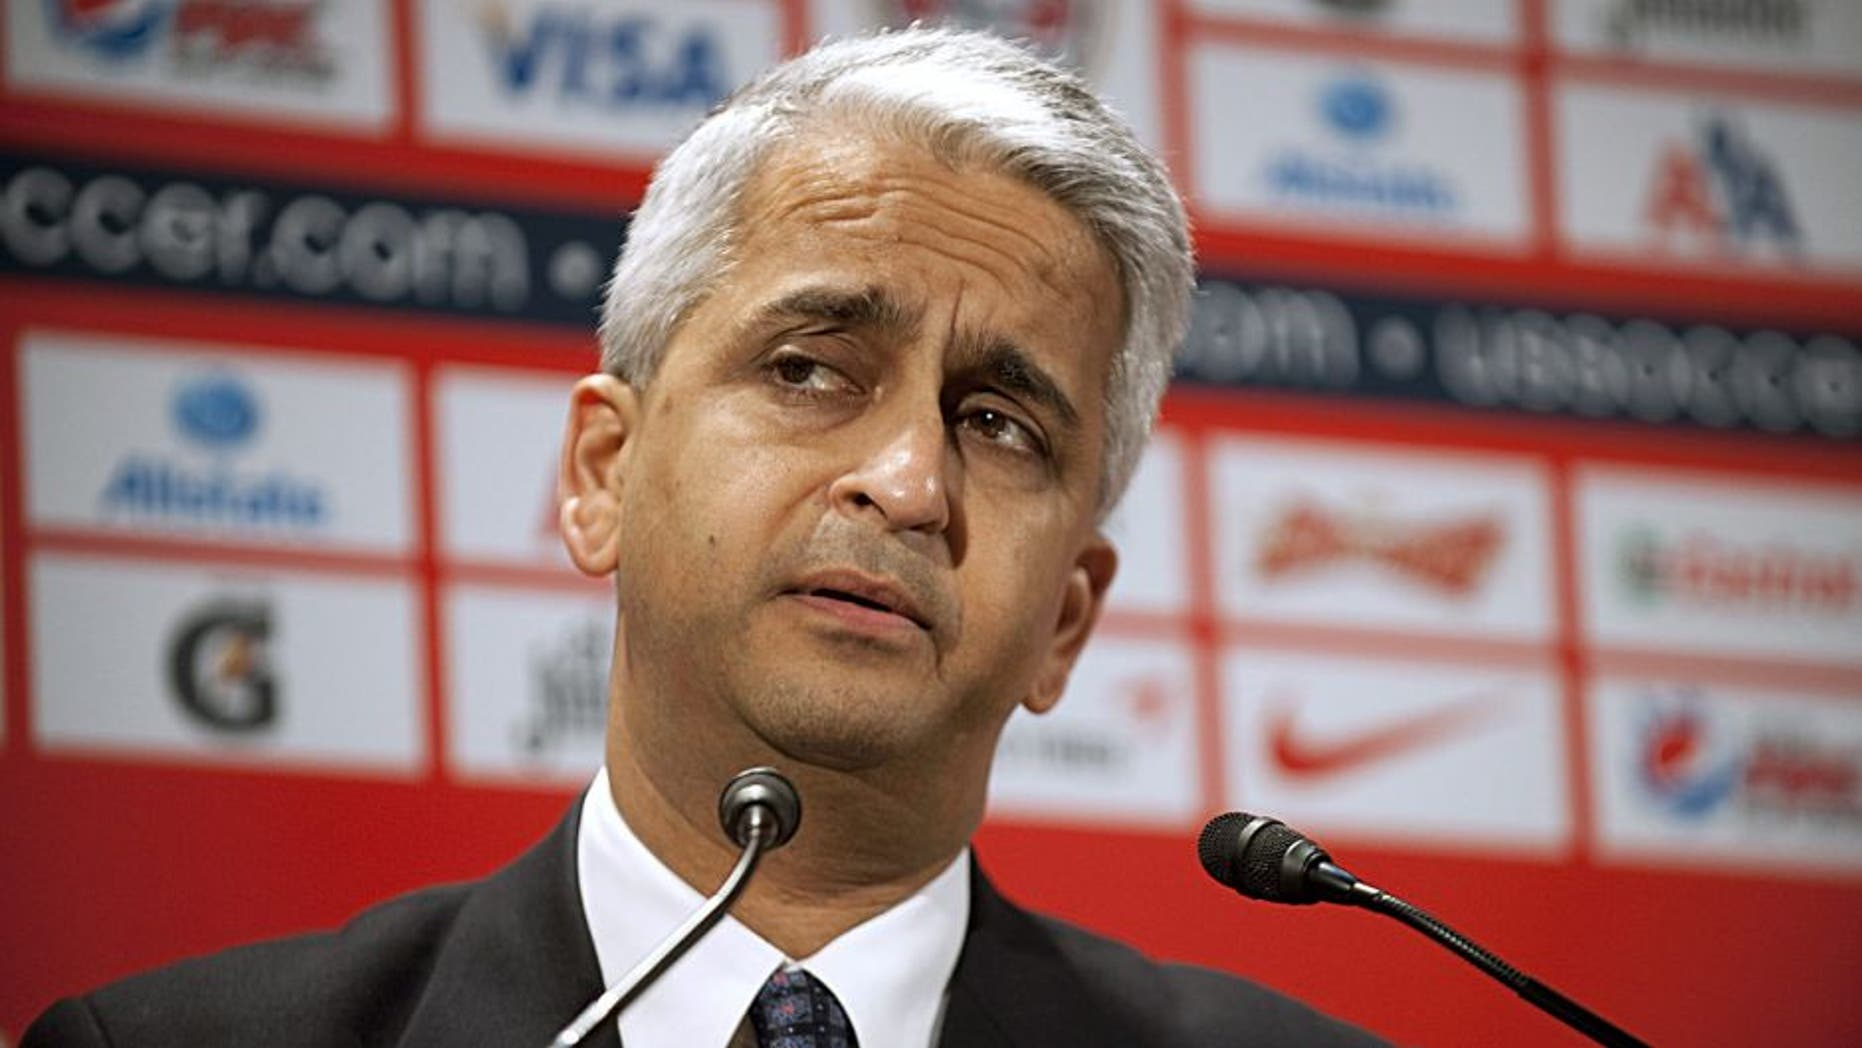 US Soccer President Sunil Gulati introduces German soccer star Jürgen Klinsmann as the new head coach of the US Mens National Team at a press conference August 1, 2011 in New York. AFP PHOTO/DON EMMERT (Photo credit should read DON EMMERT/AFP/Getty Images)